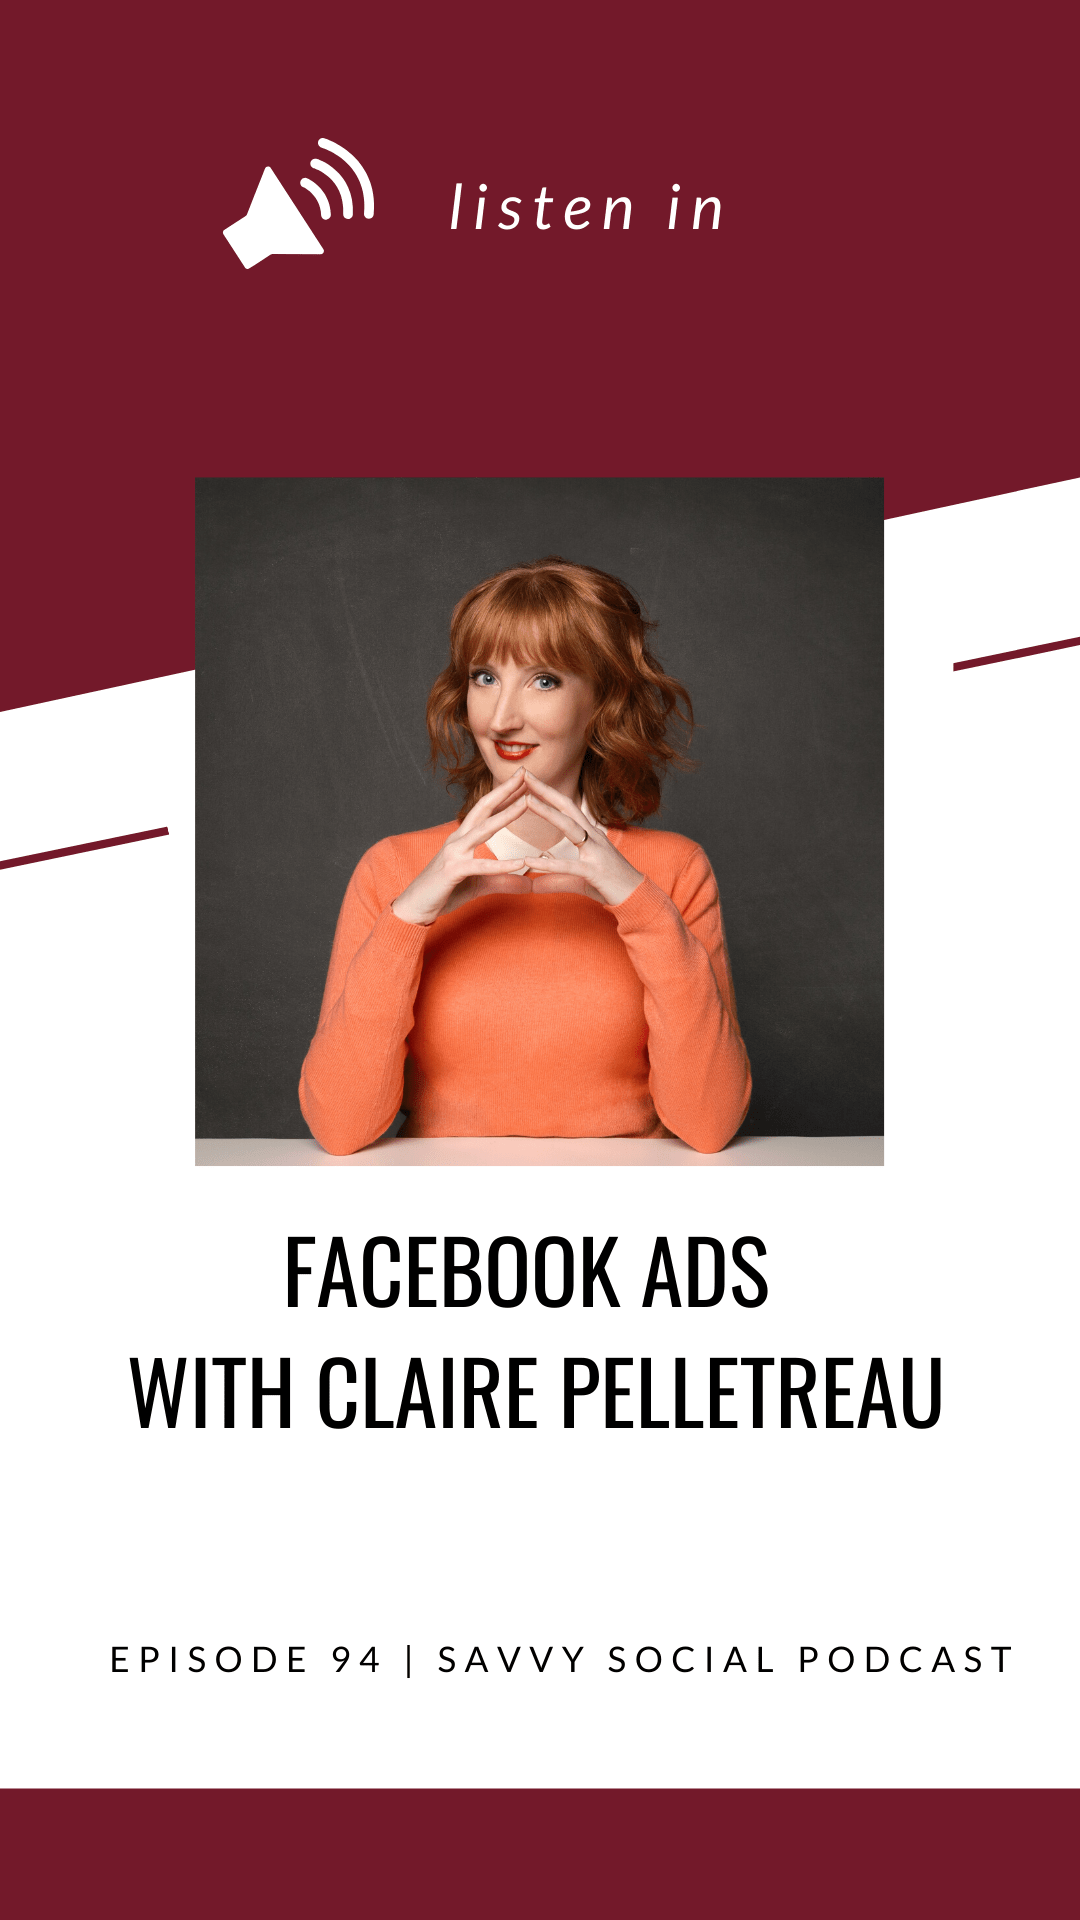 Facebook Ads with Claire Pelletreau